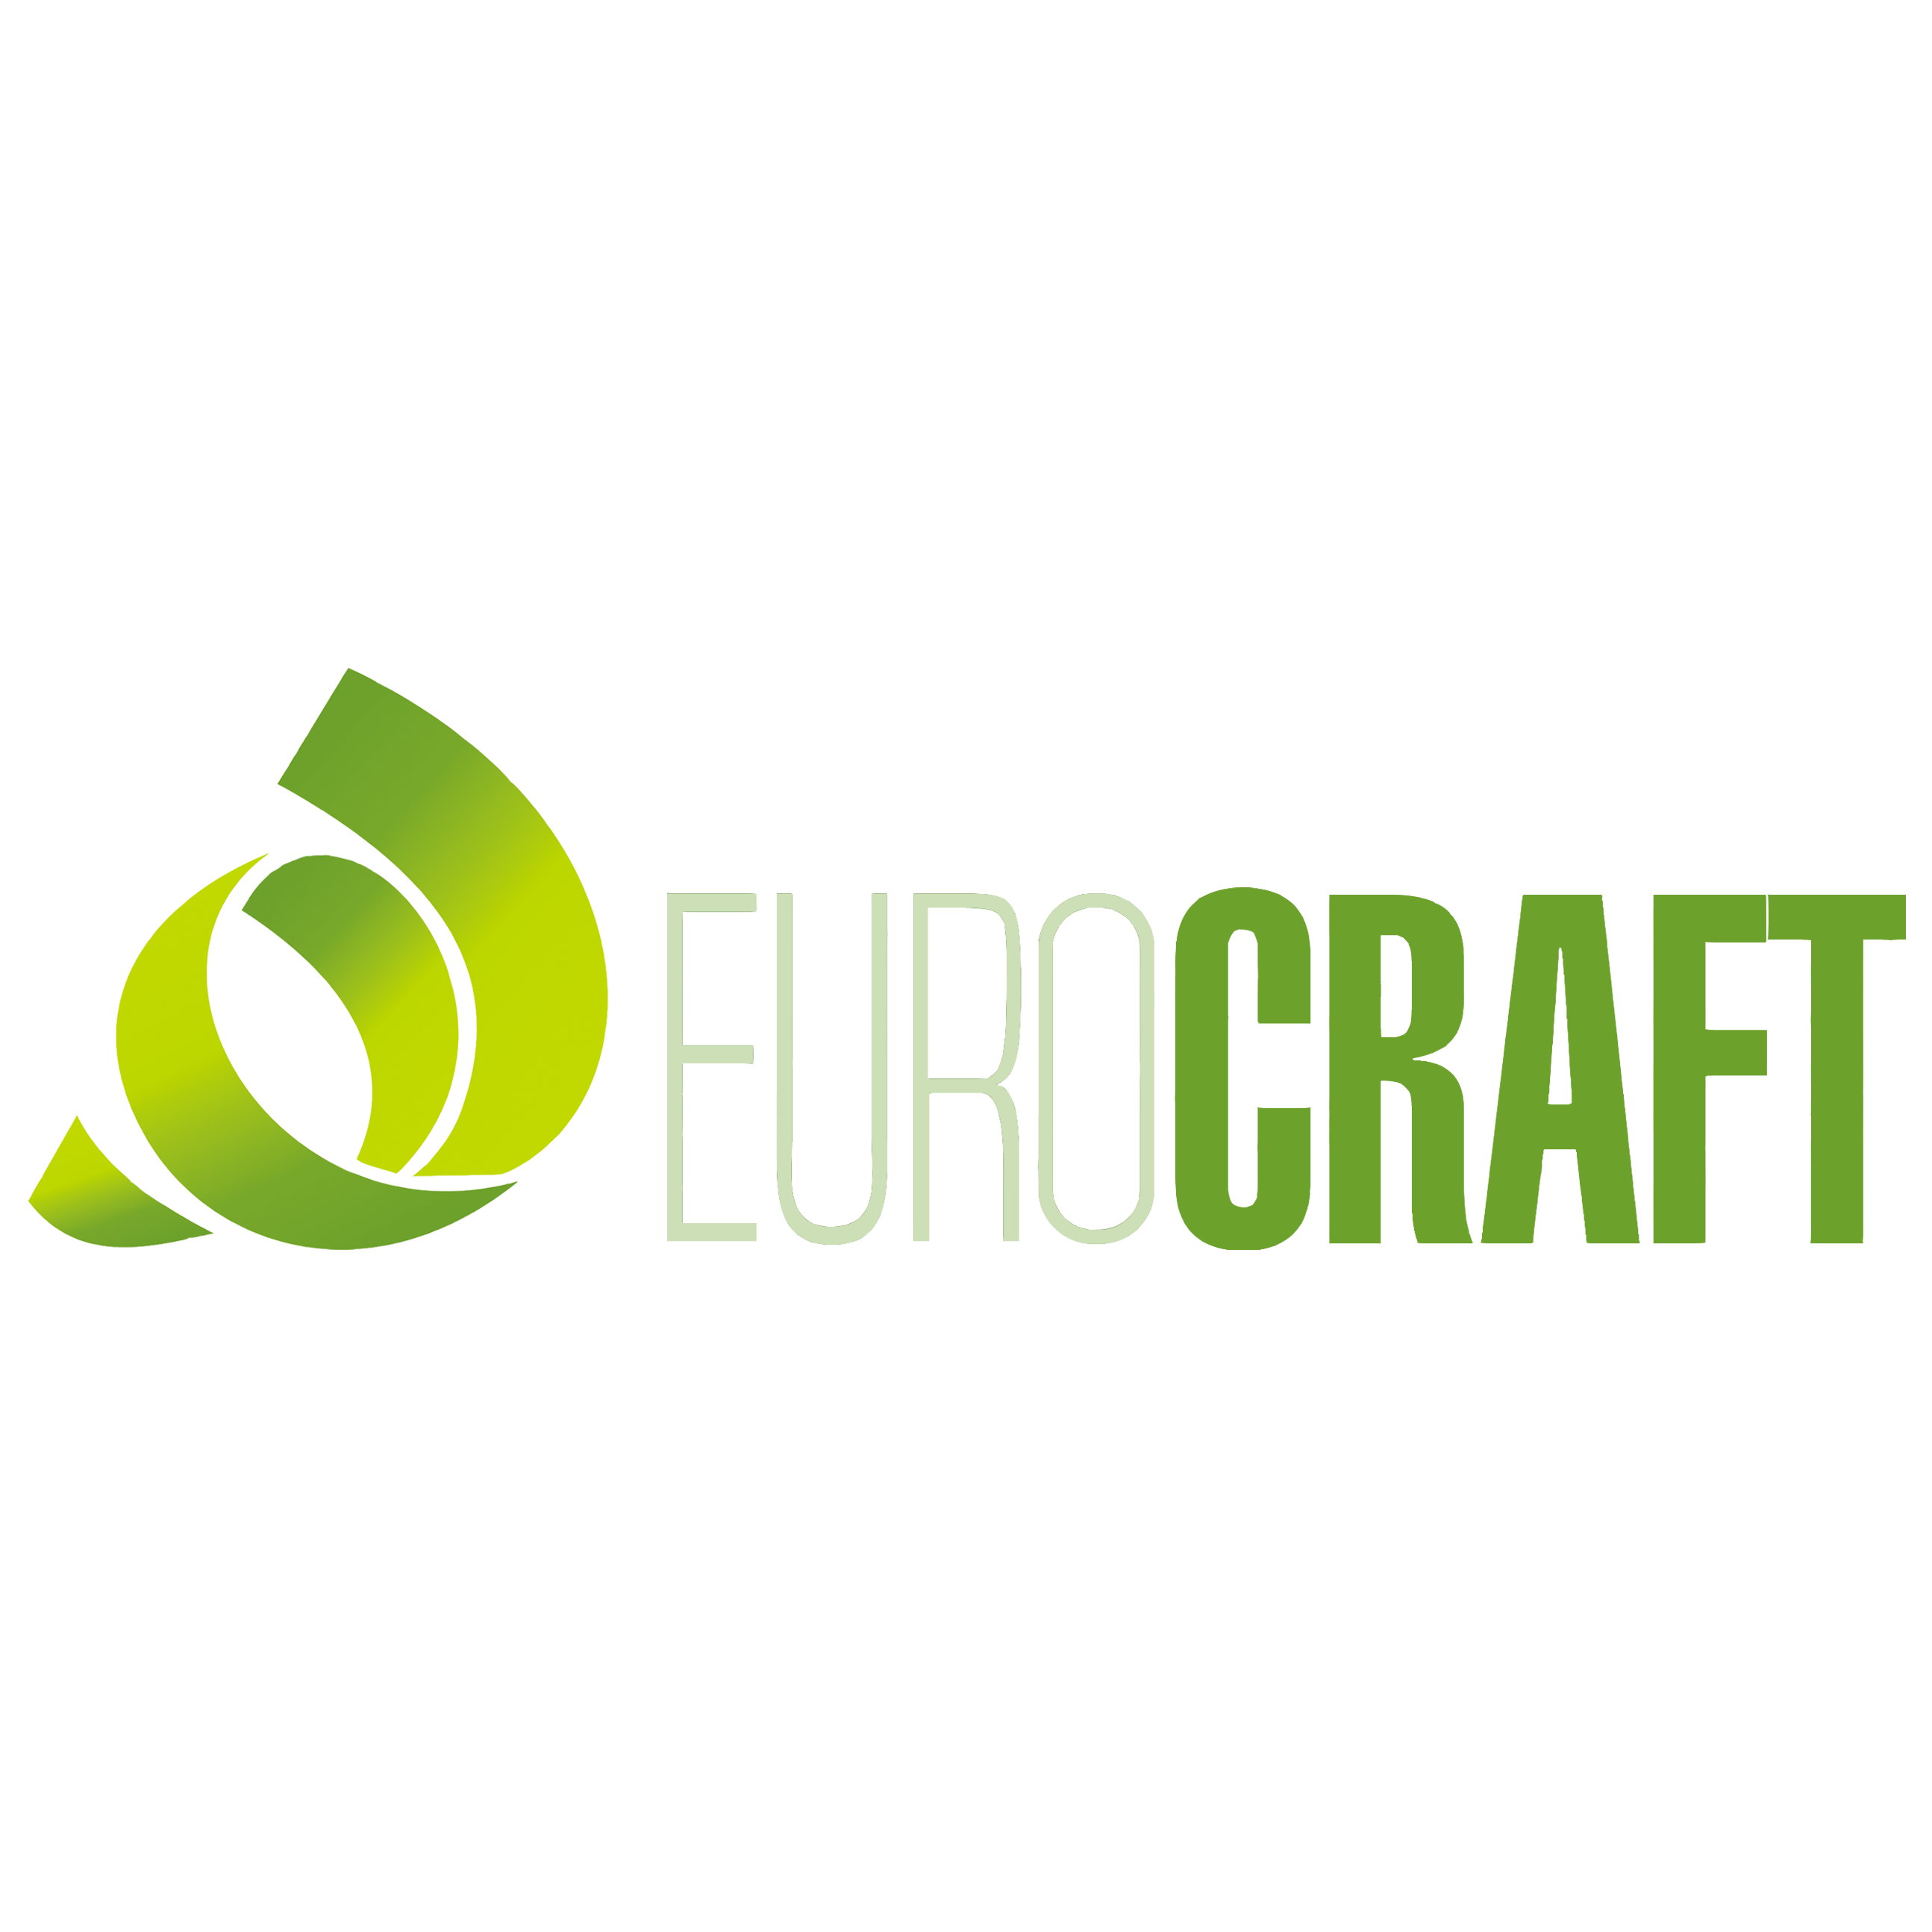 Eurocraft Industries, Inc